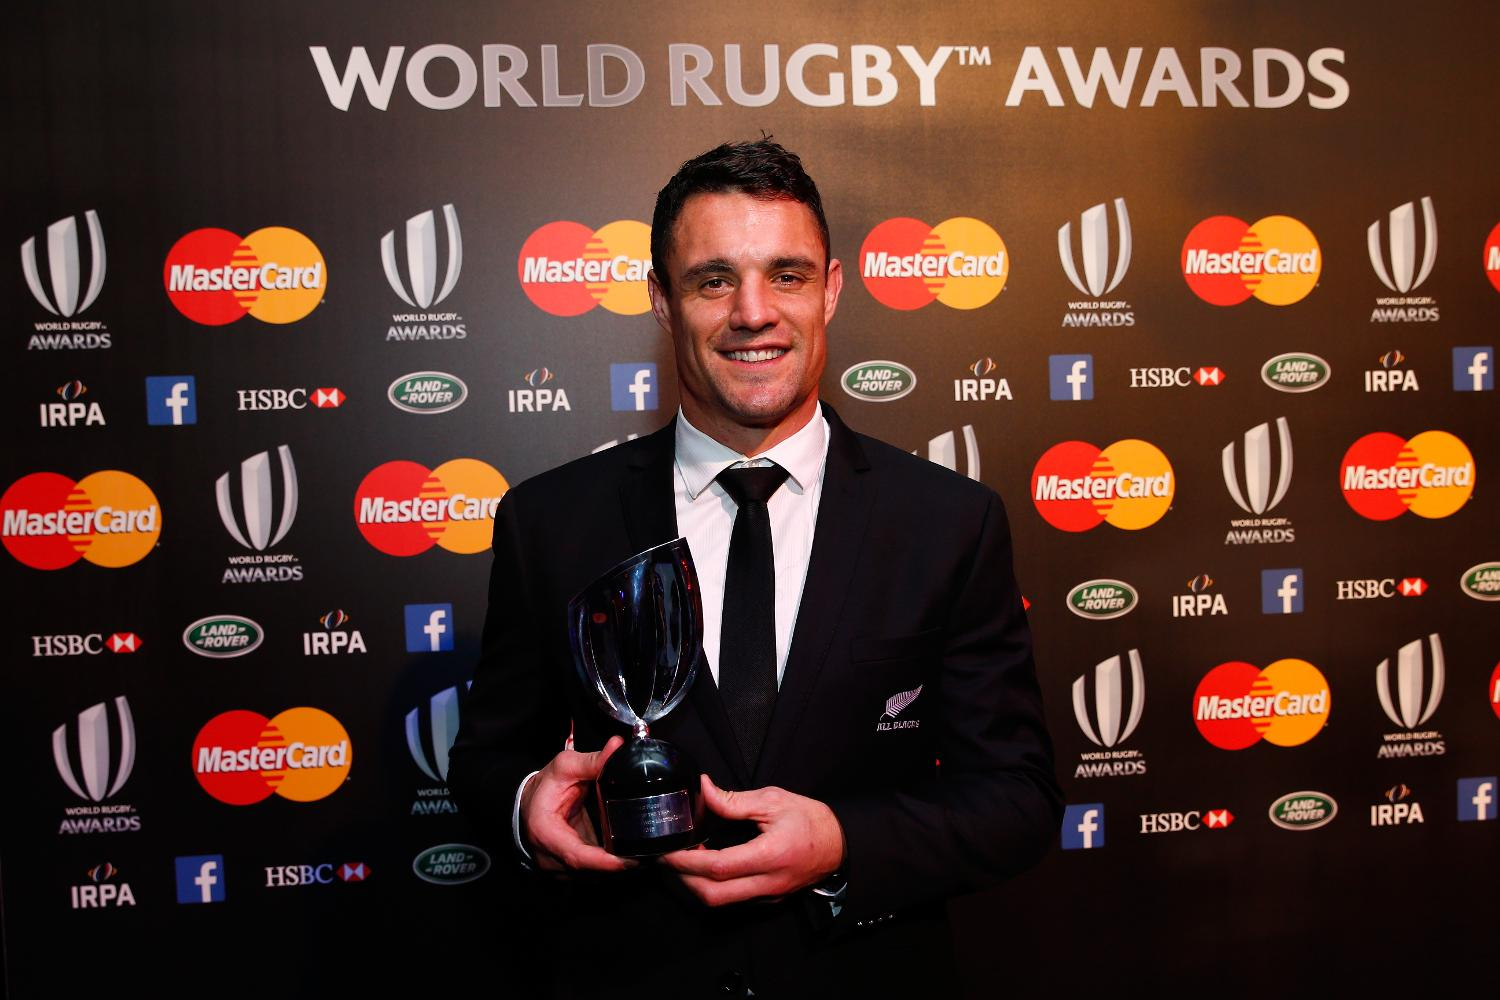 Daniel Carter - World Rugby Player of the Year 2015